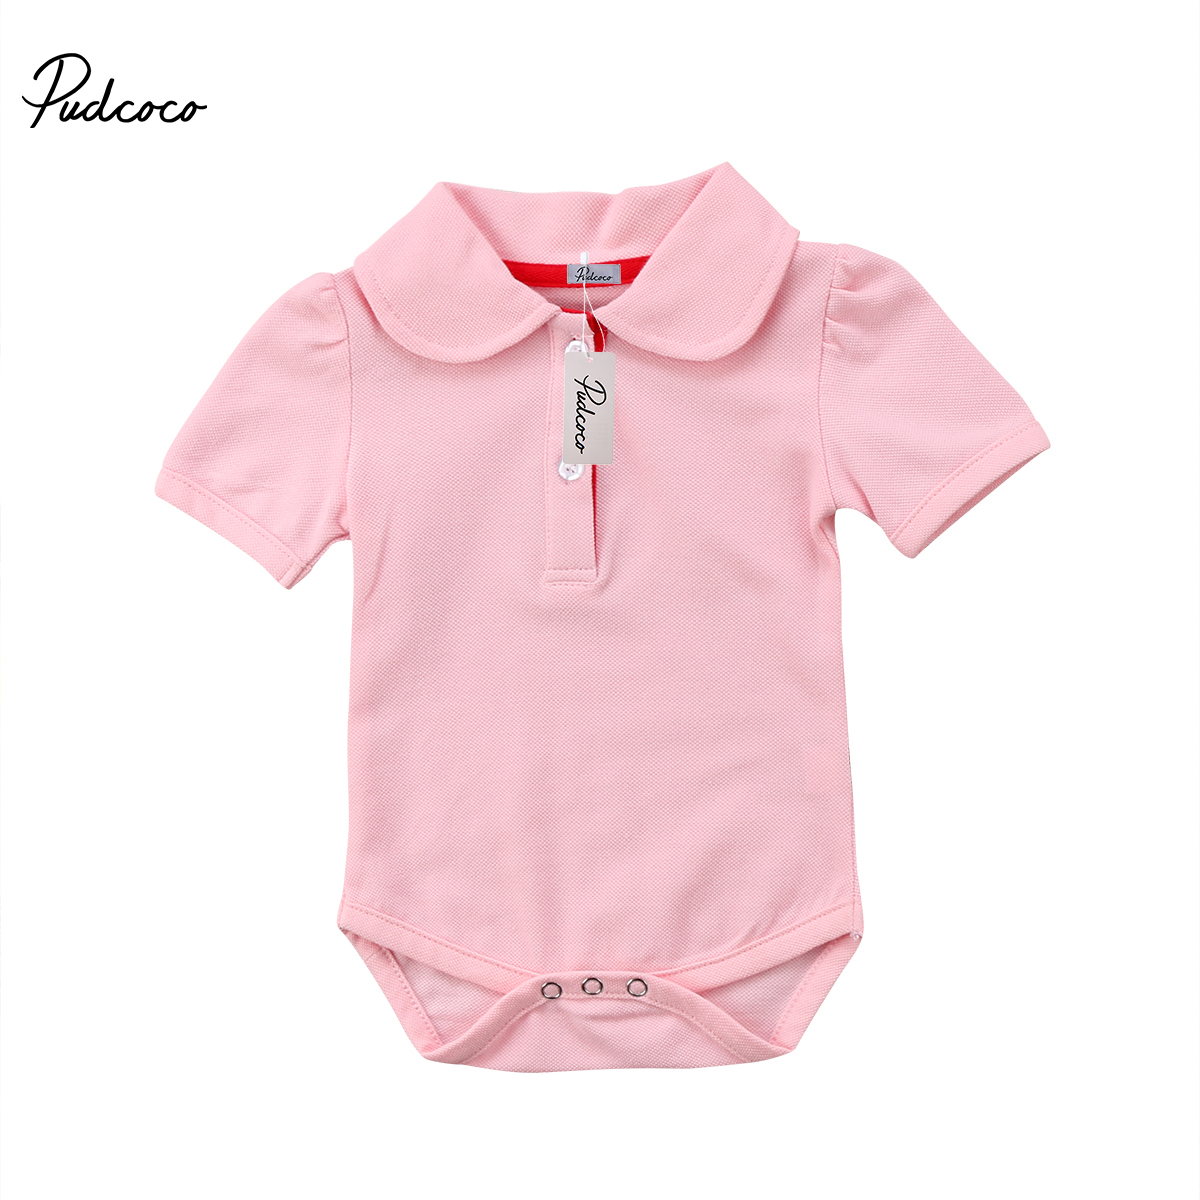 Newborn Baby Boys Girls Polo Shirt Short Sleeve Summer Infant New